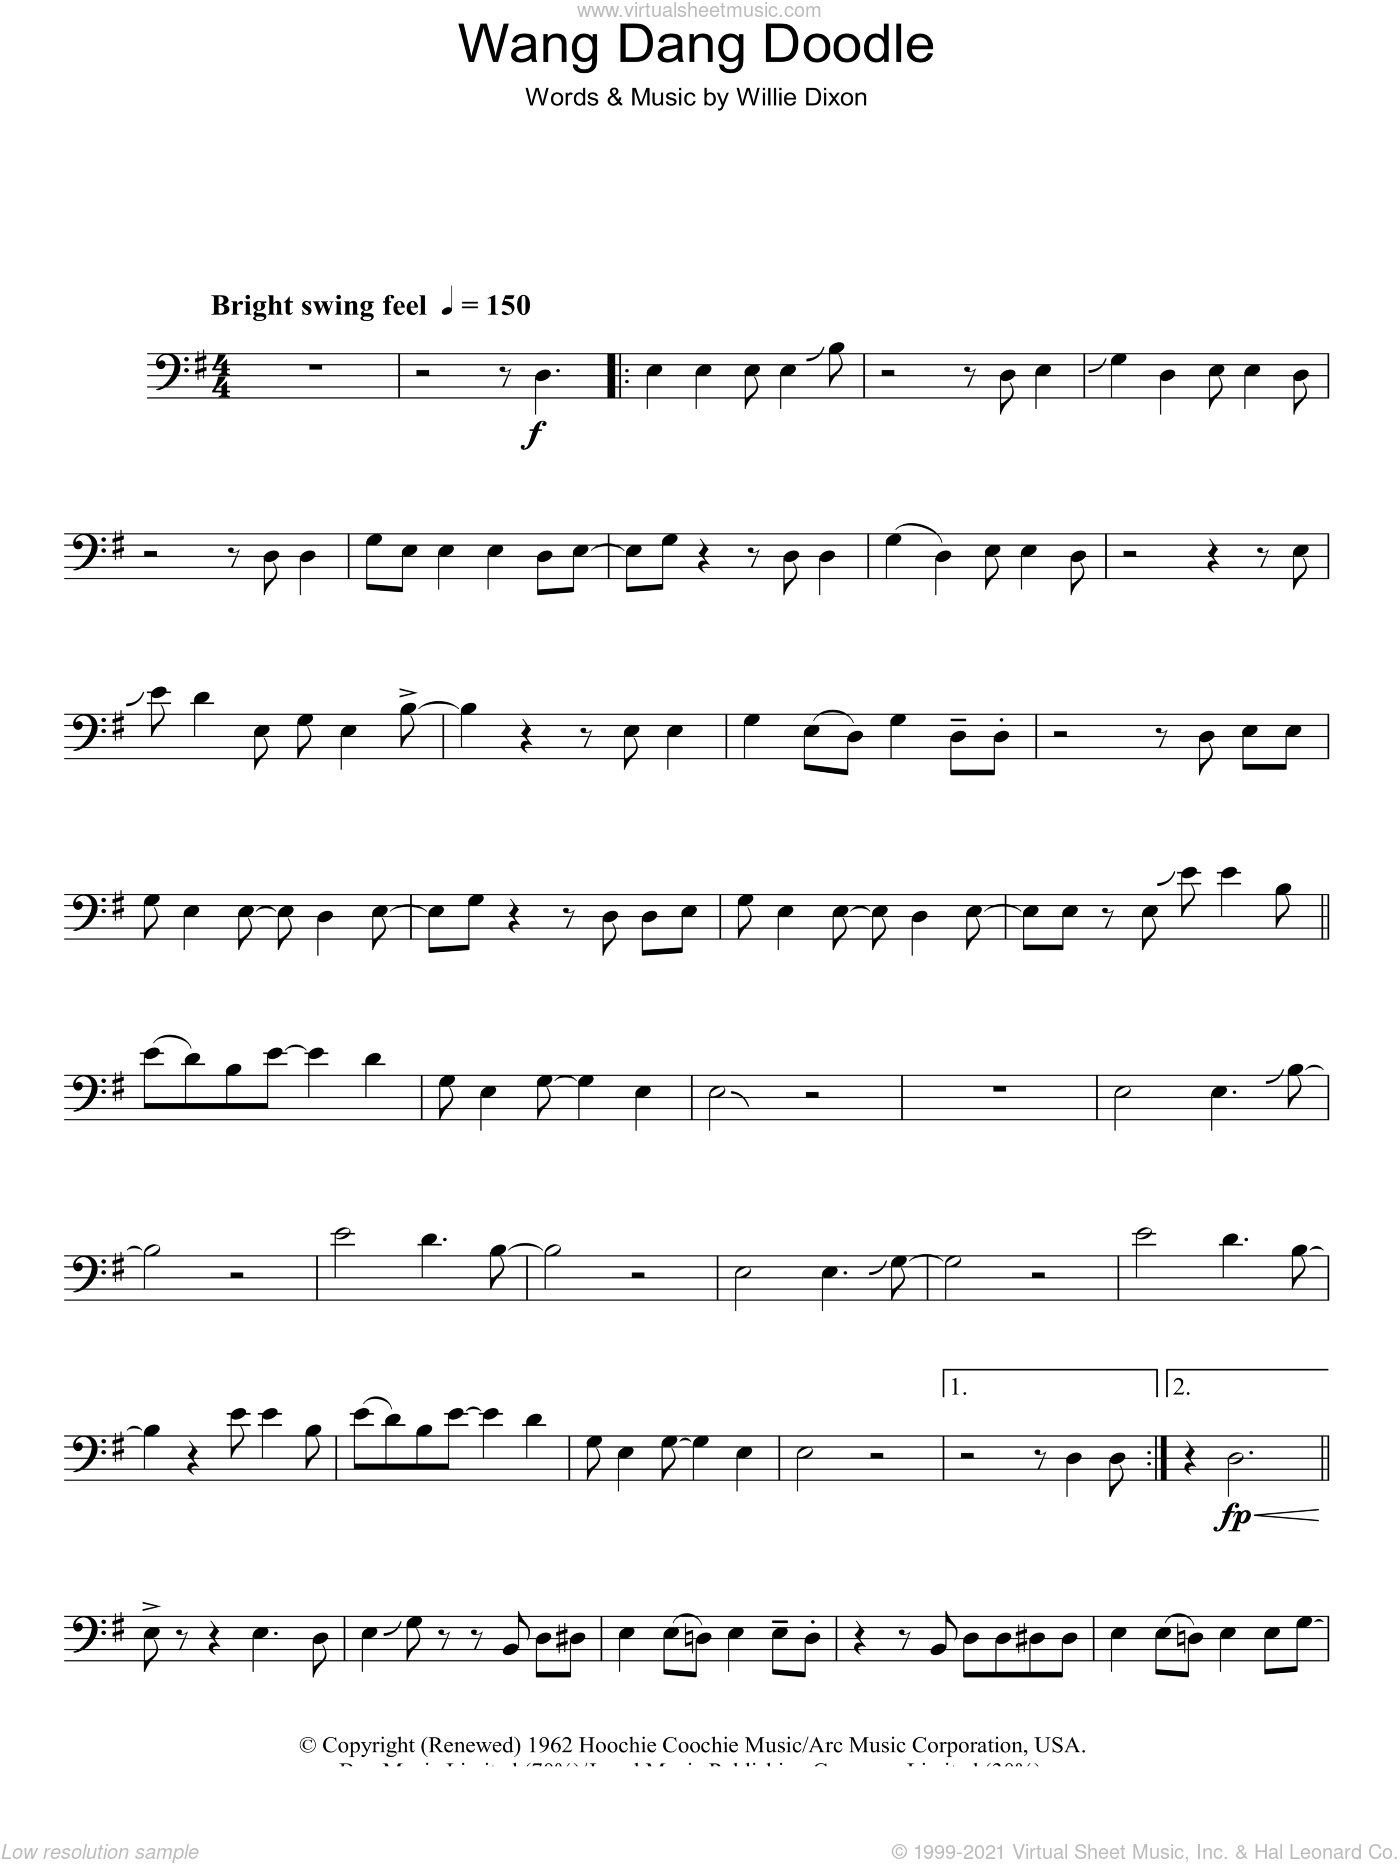 Wang Dang Doodle sheet music for voice, piano or guitar by Willie Dixon. Score Image Preview.